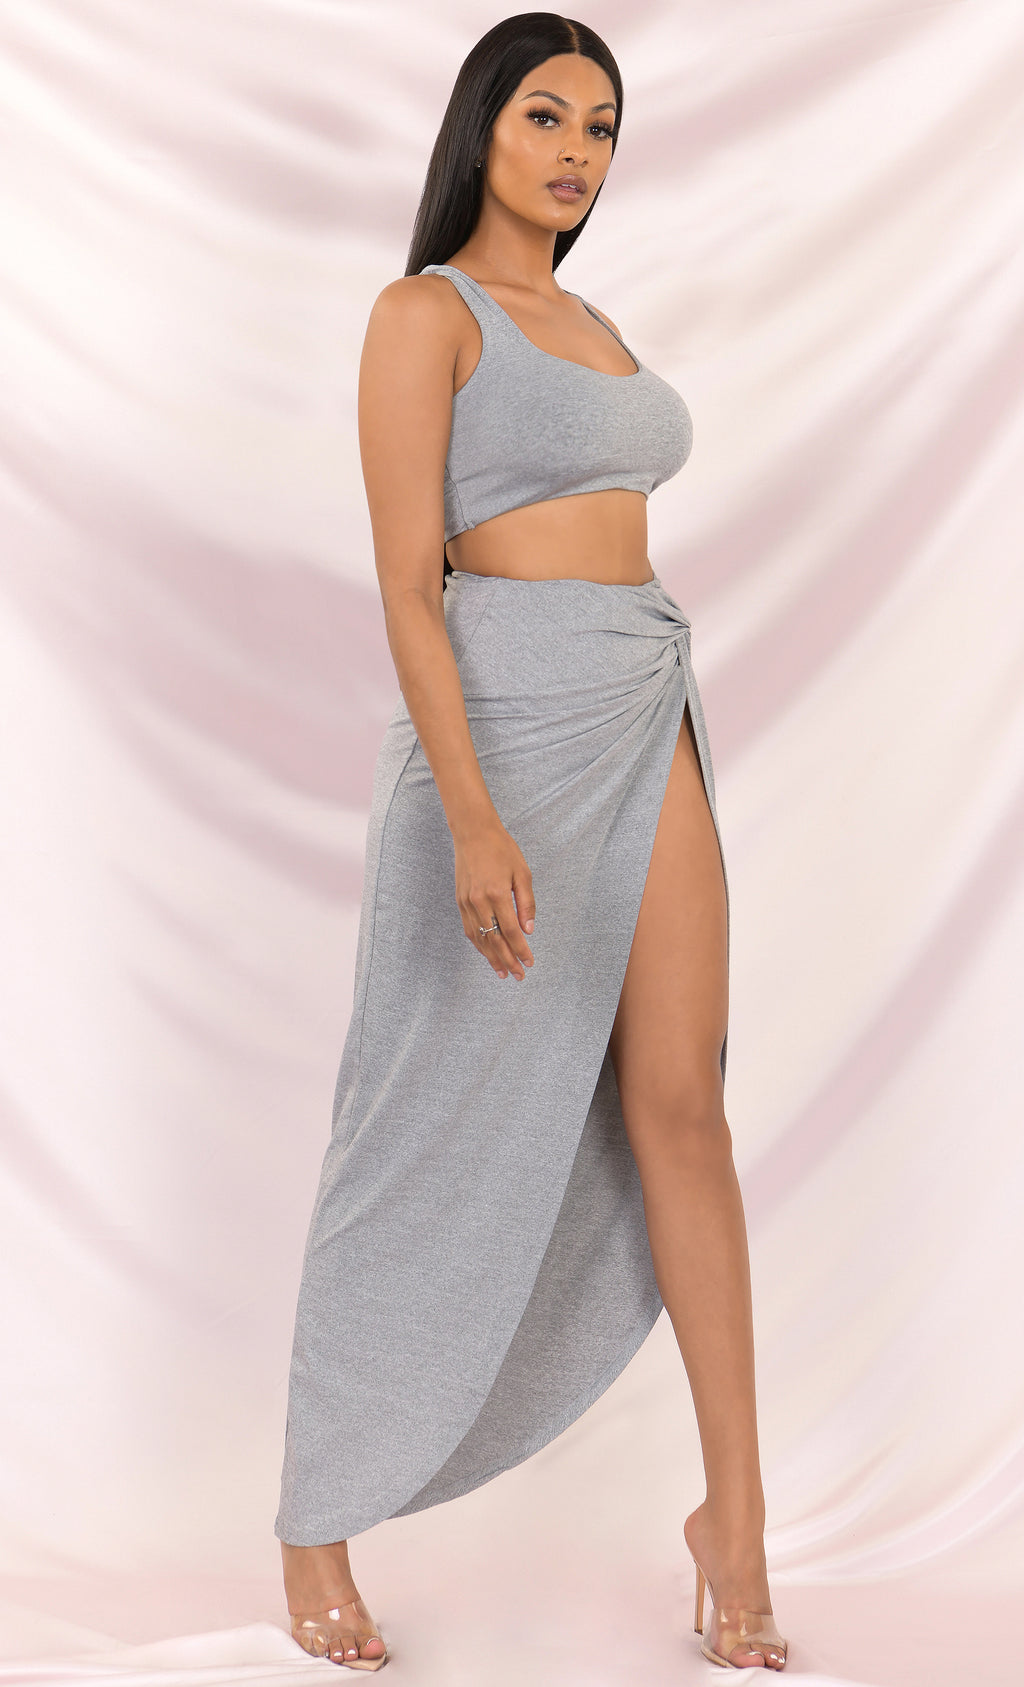 You're The One Light Gray Sleeveless Scoop Neck Casual Crop Tank Top Set Slit Maxi High Waisted Asymmetrical Ruched Twist Skirt Two Piece Dress